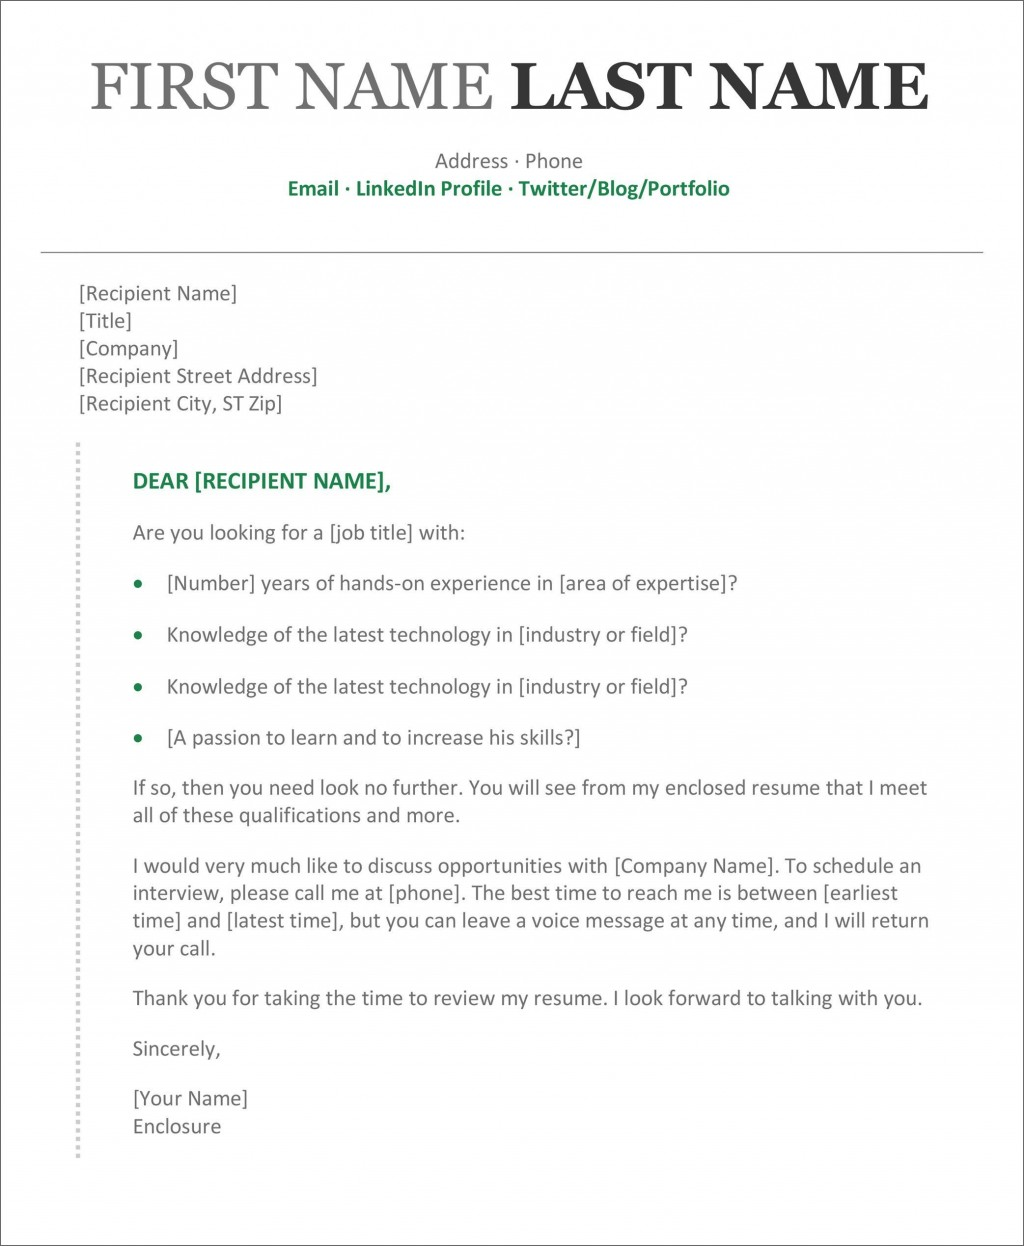 002 Rare Resume Cover Letter Template Microsoft Word Picture Large